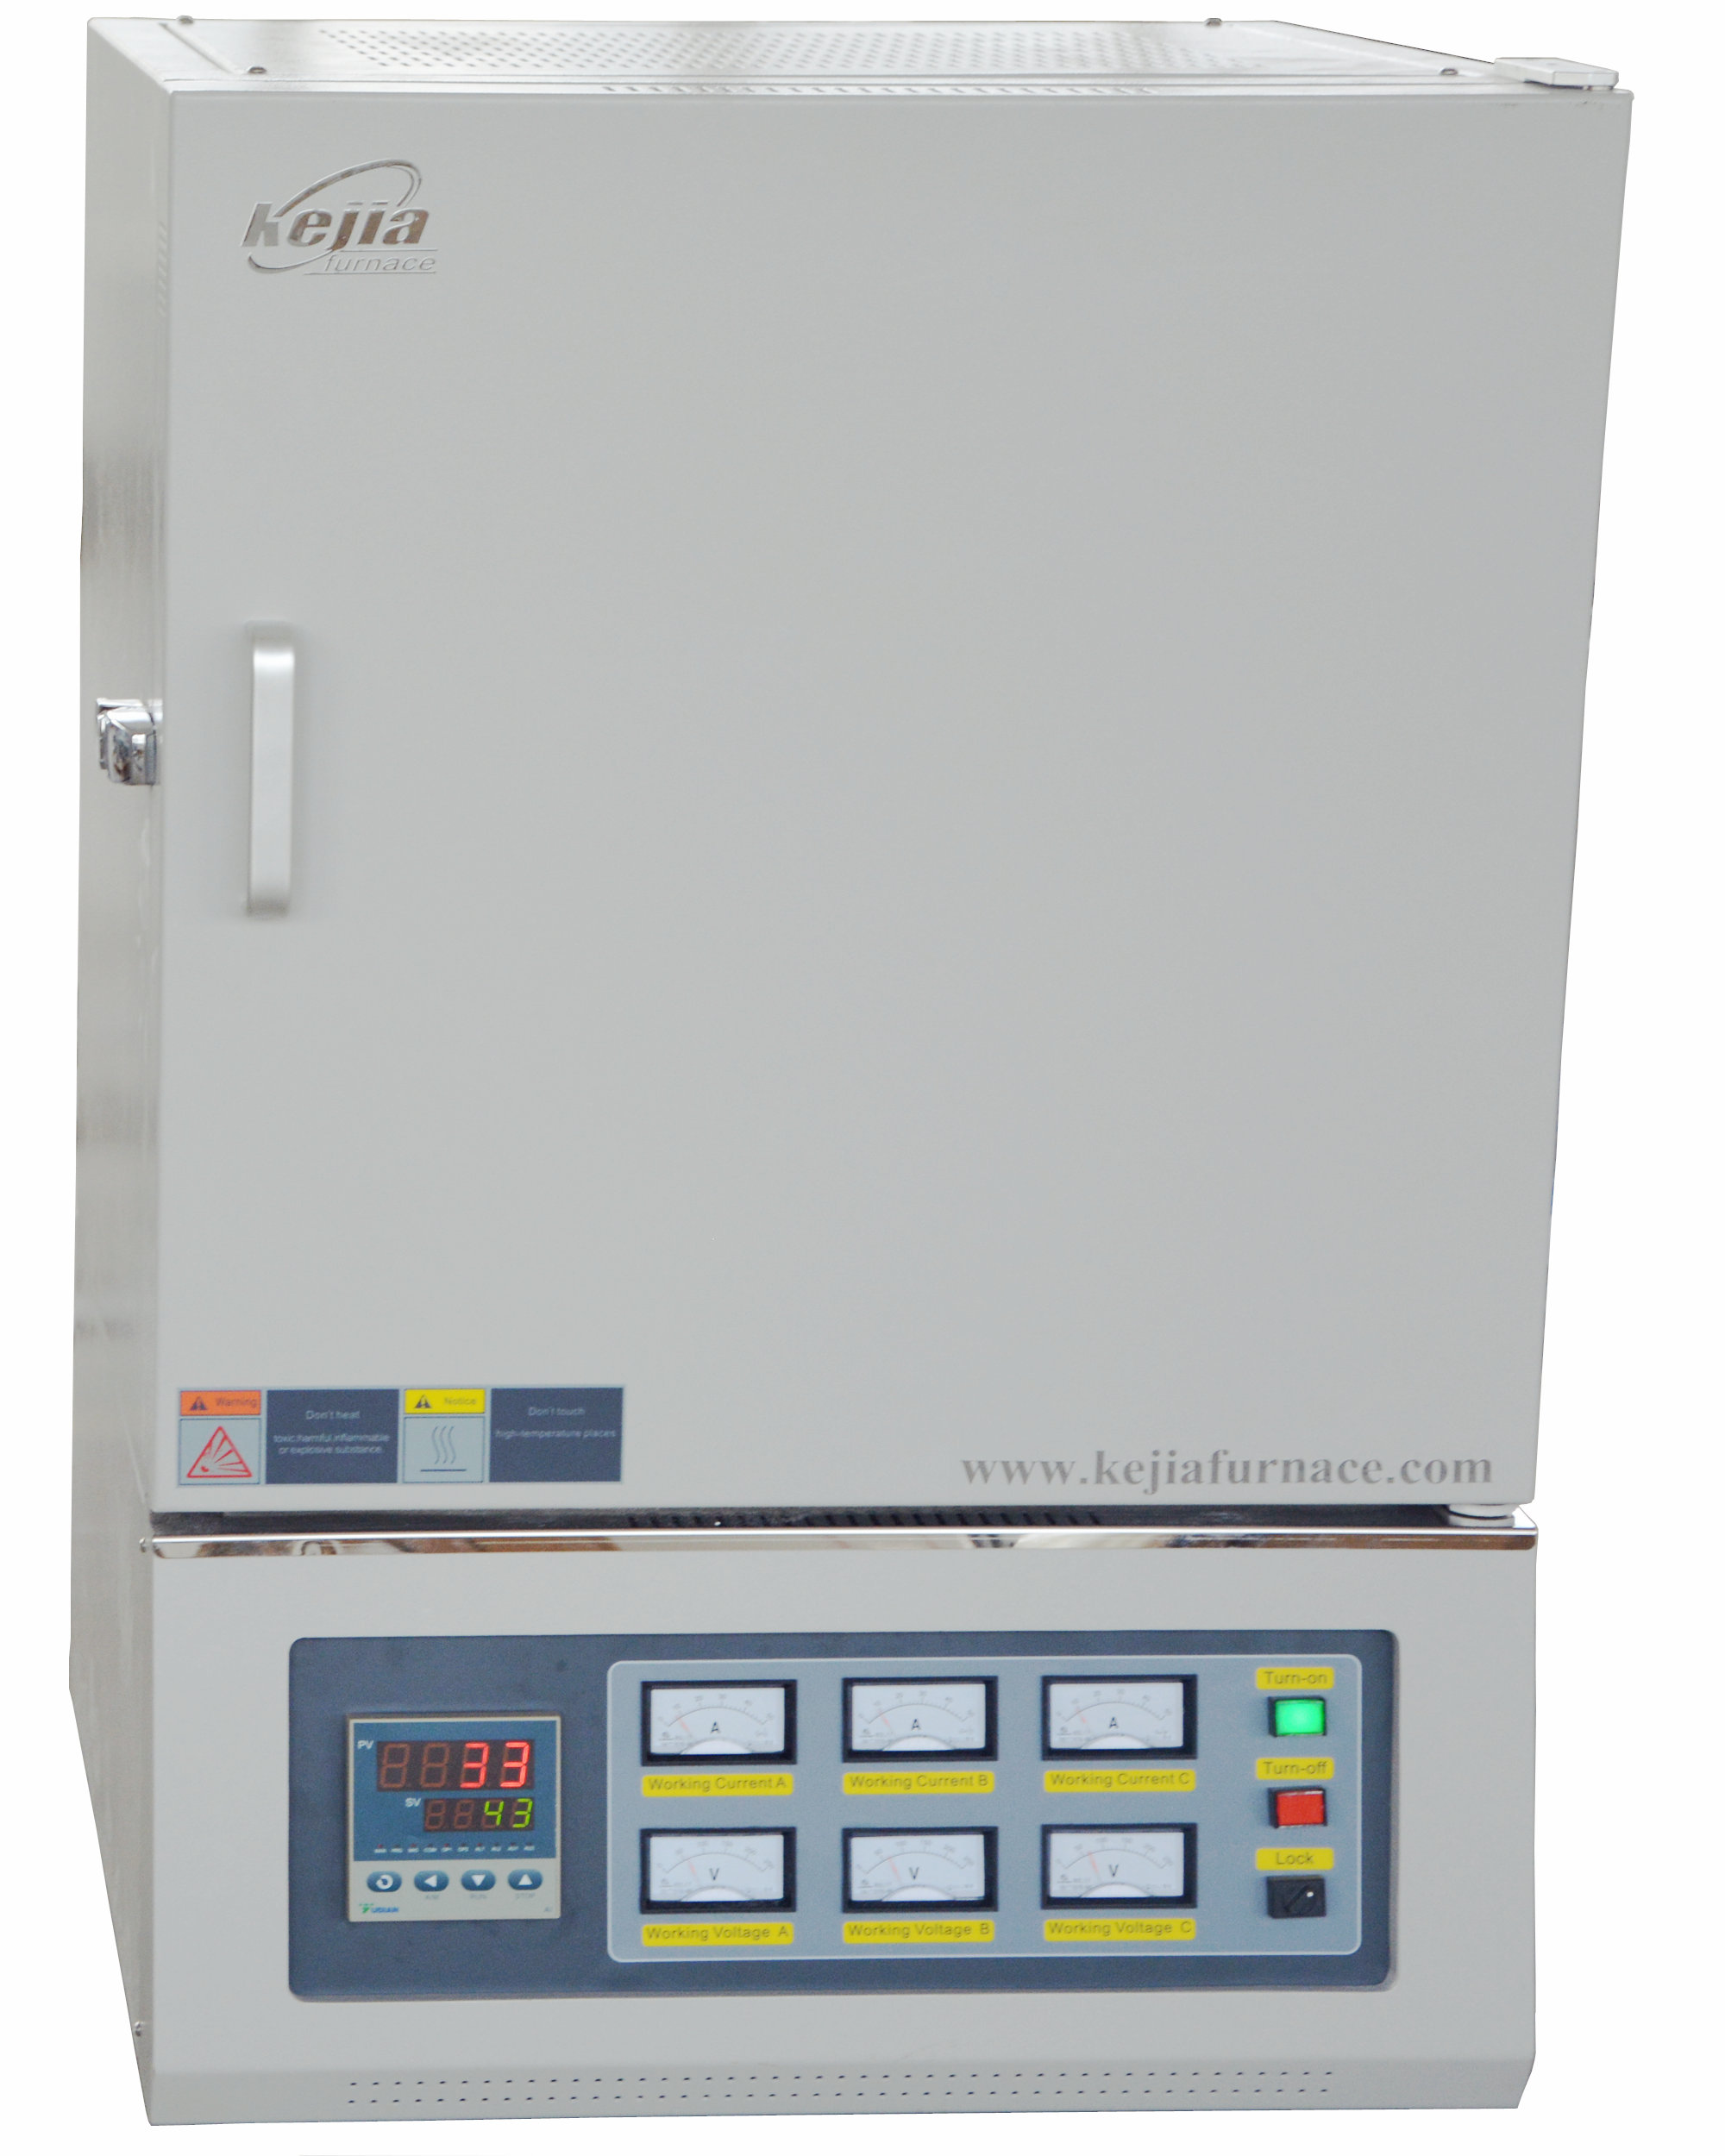 1200 Uses Of Electric Heating Muffle Furnace For Sale Kejia